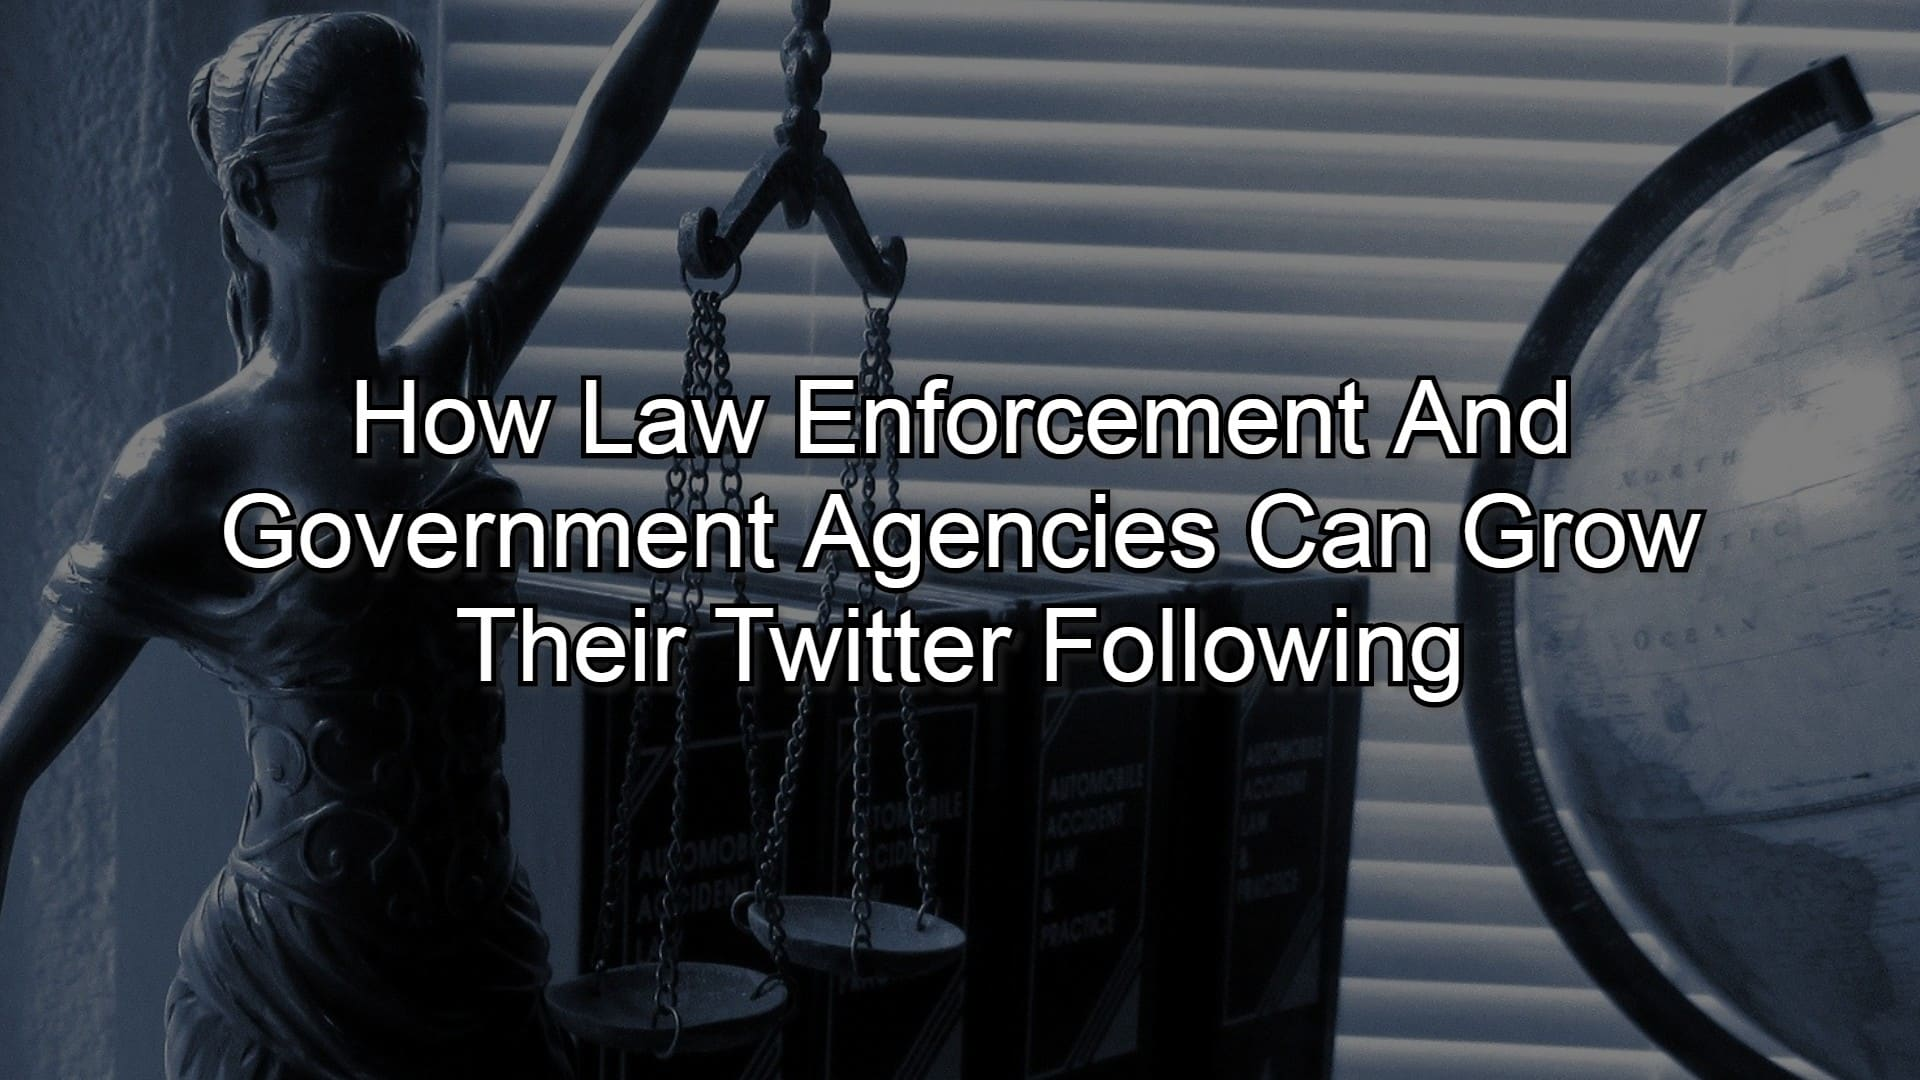 How Law Enforcement And Government Agencies Can Grow Their Twitter Following